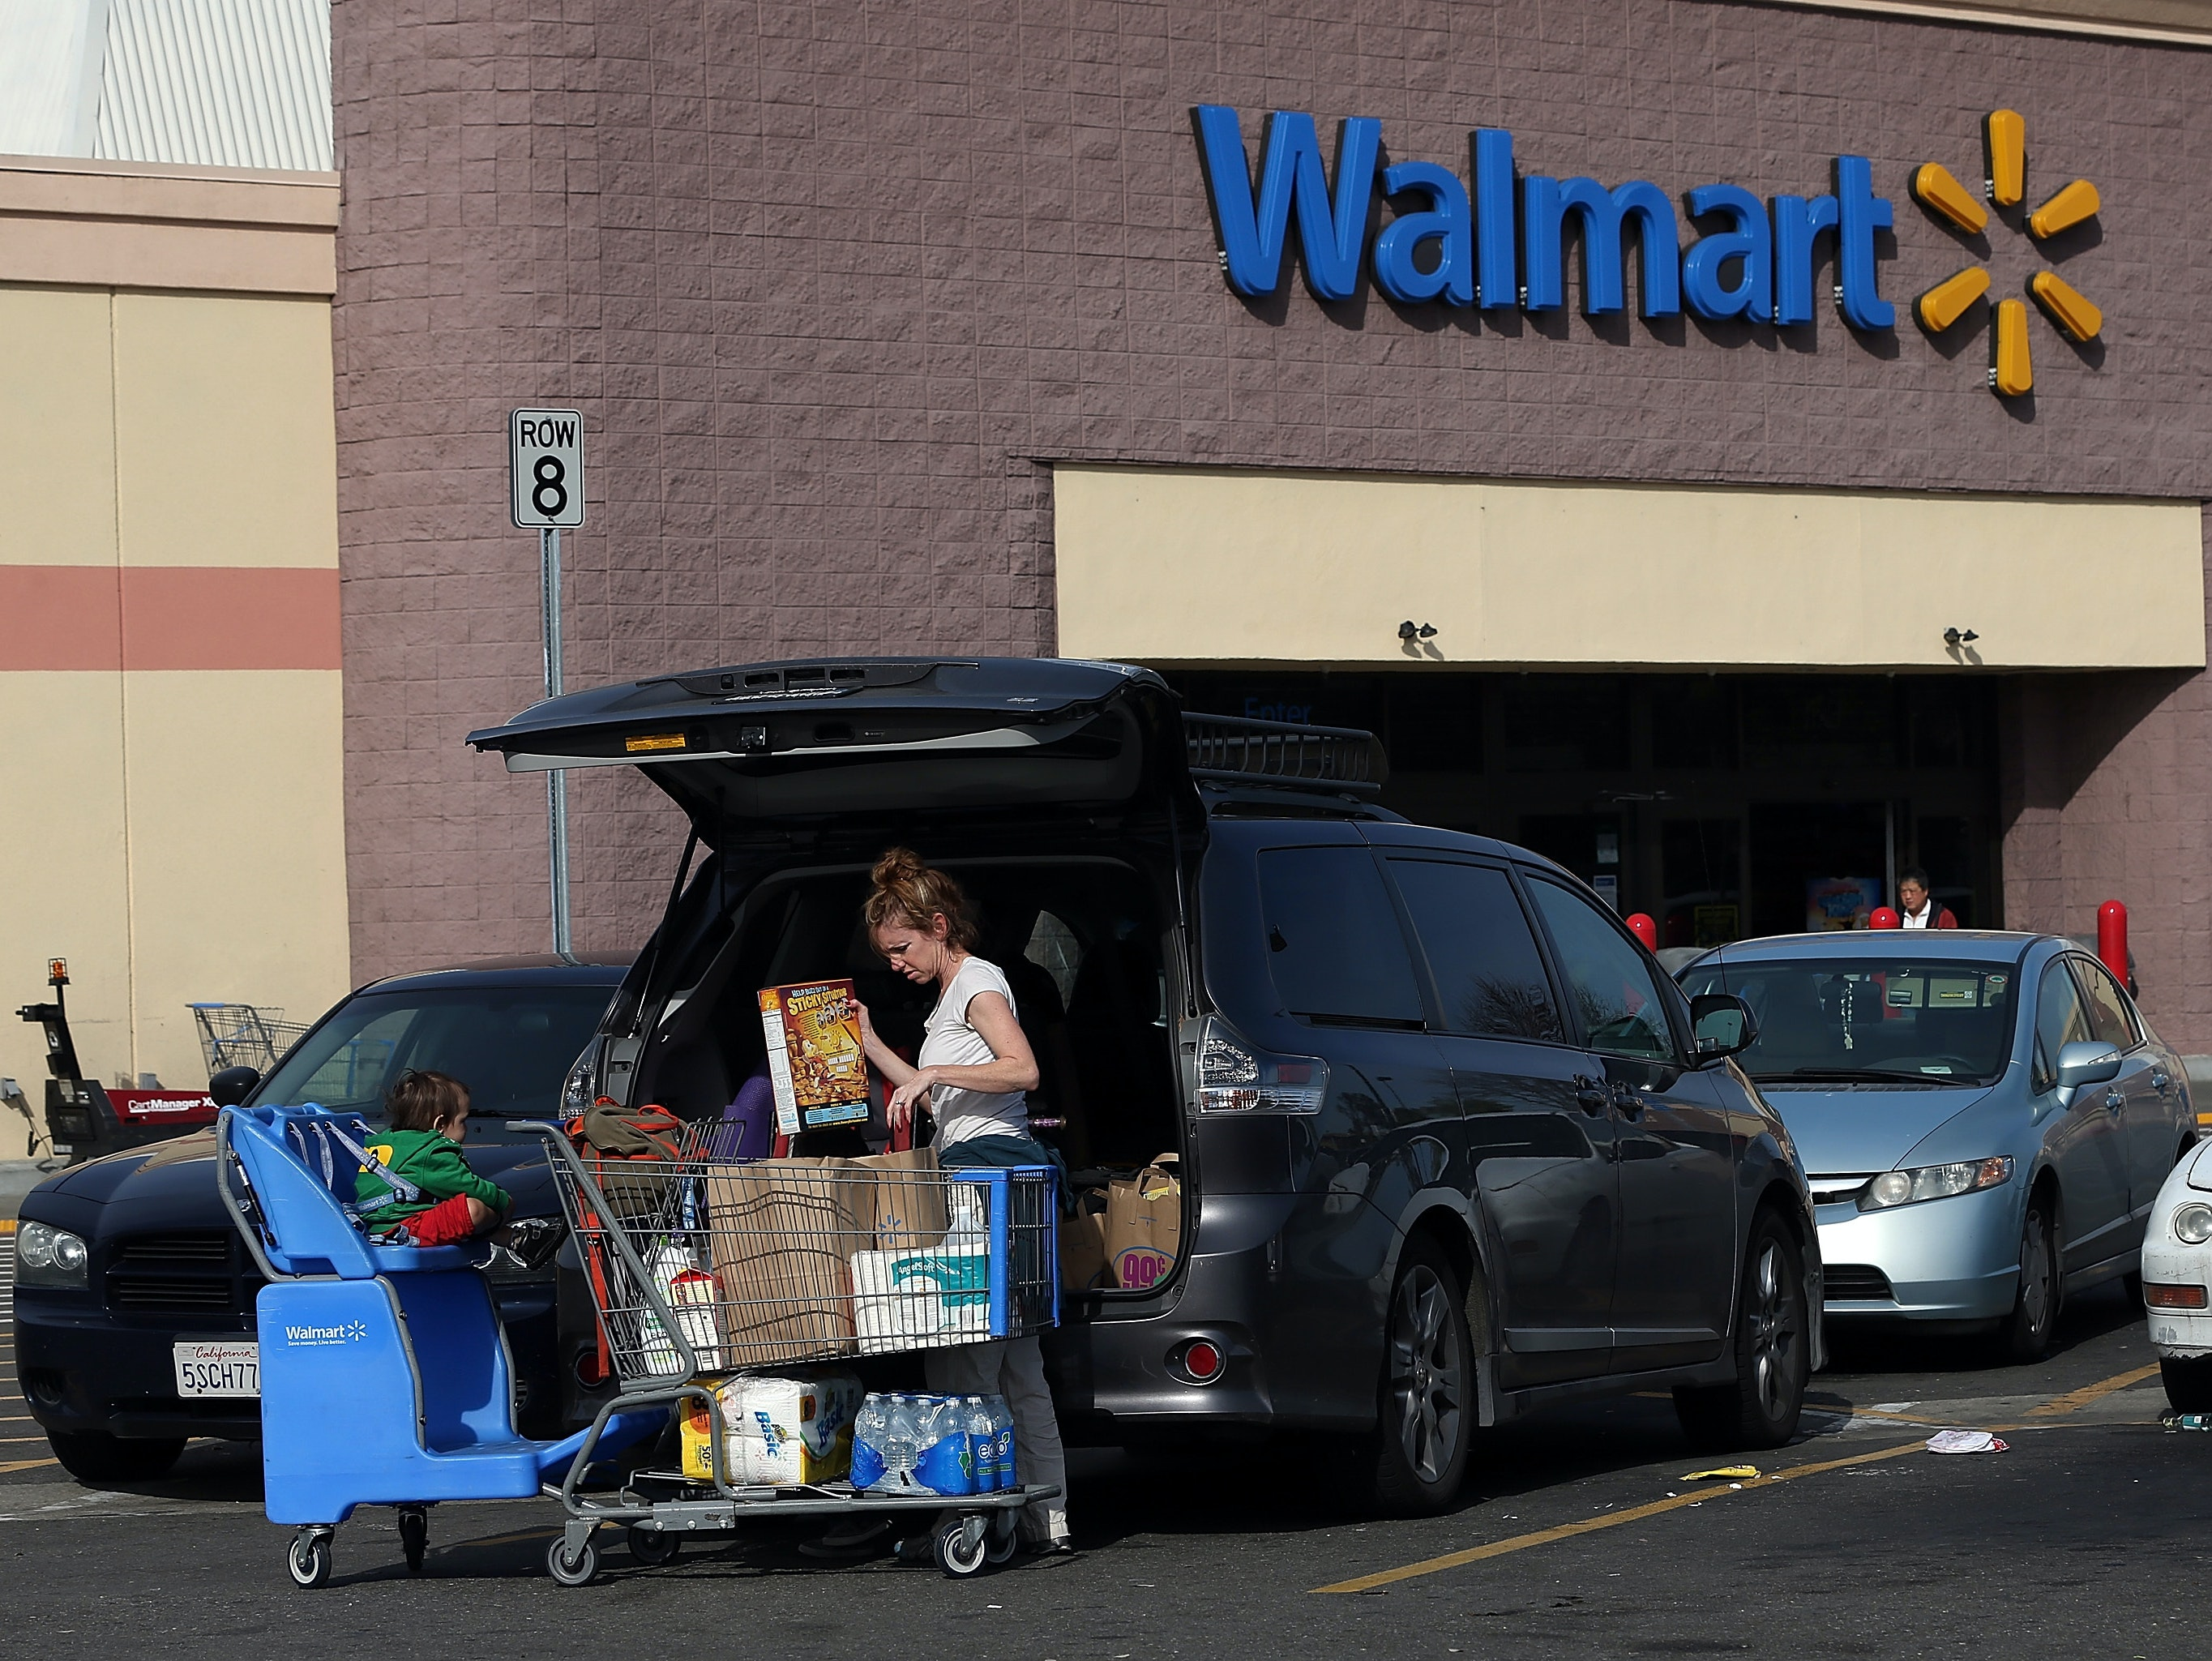 You'll Soon Be Able to Buy Cars at Walmart